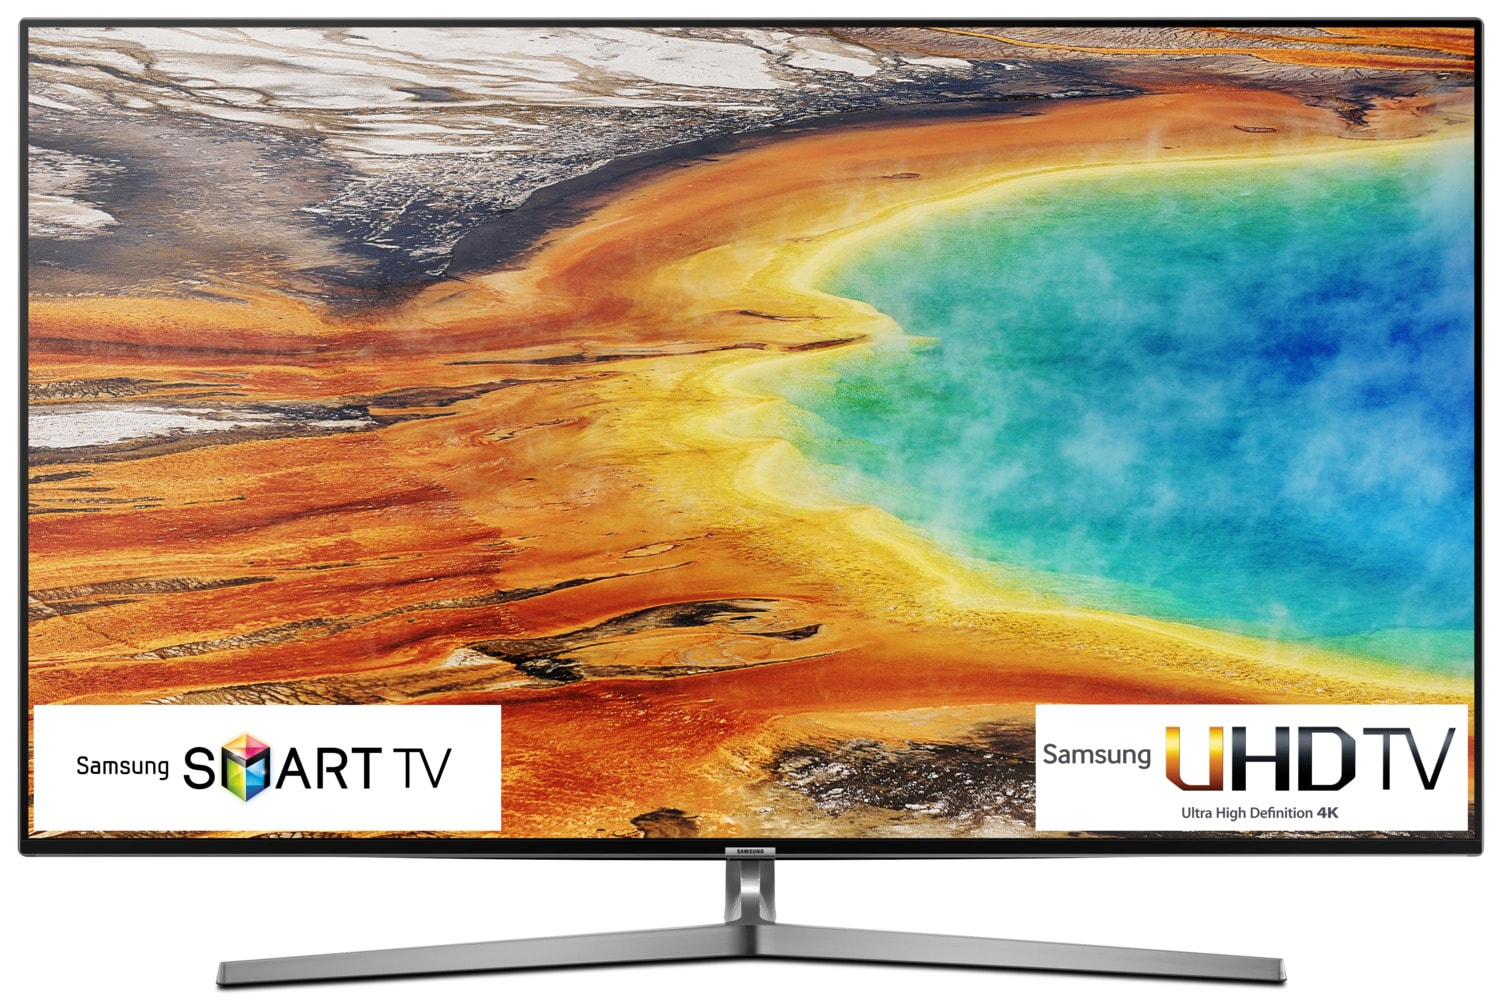 "Samsung 65"" 4K UHD Smart LED TV - UN65MU9000FXZC"